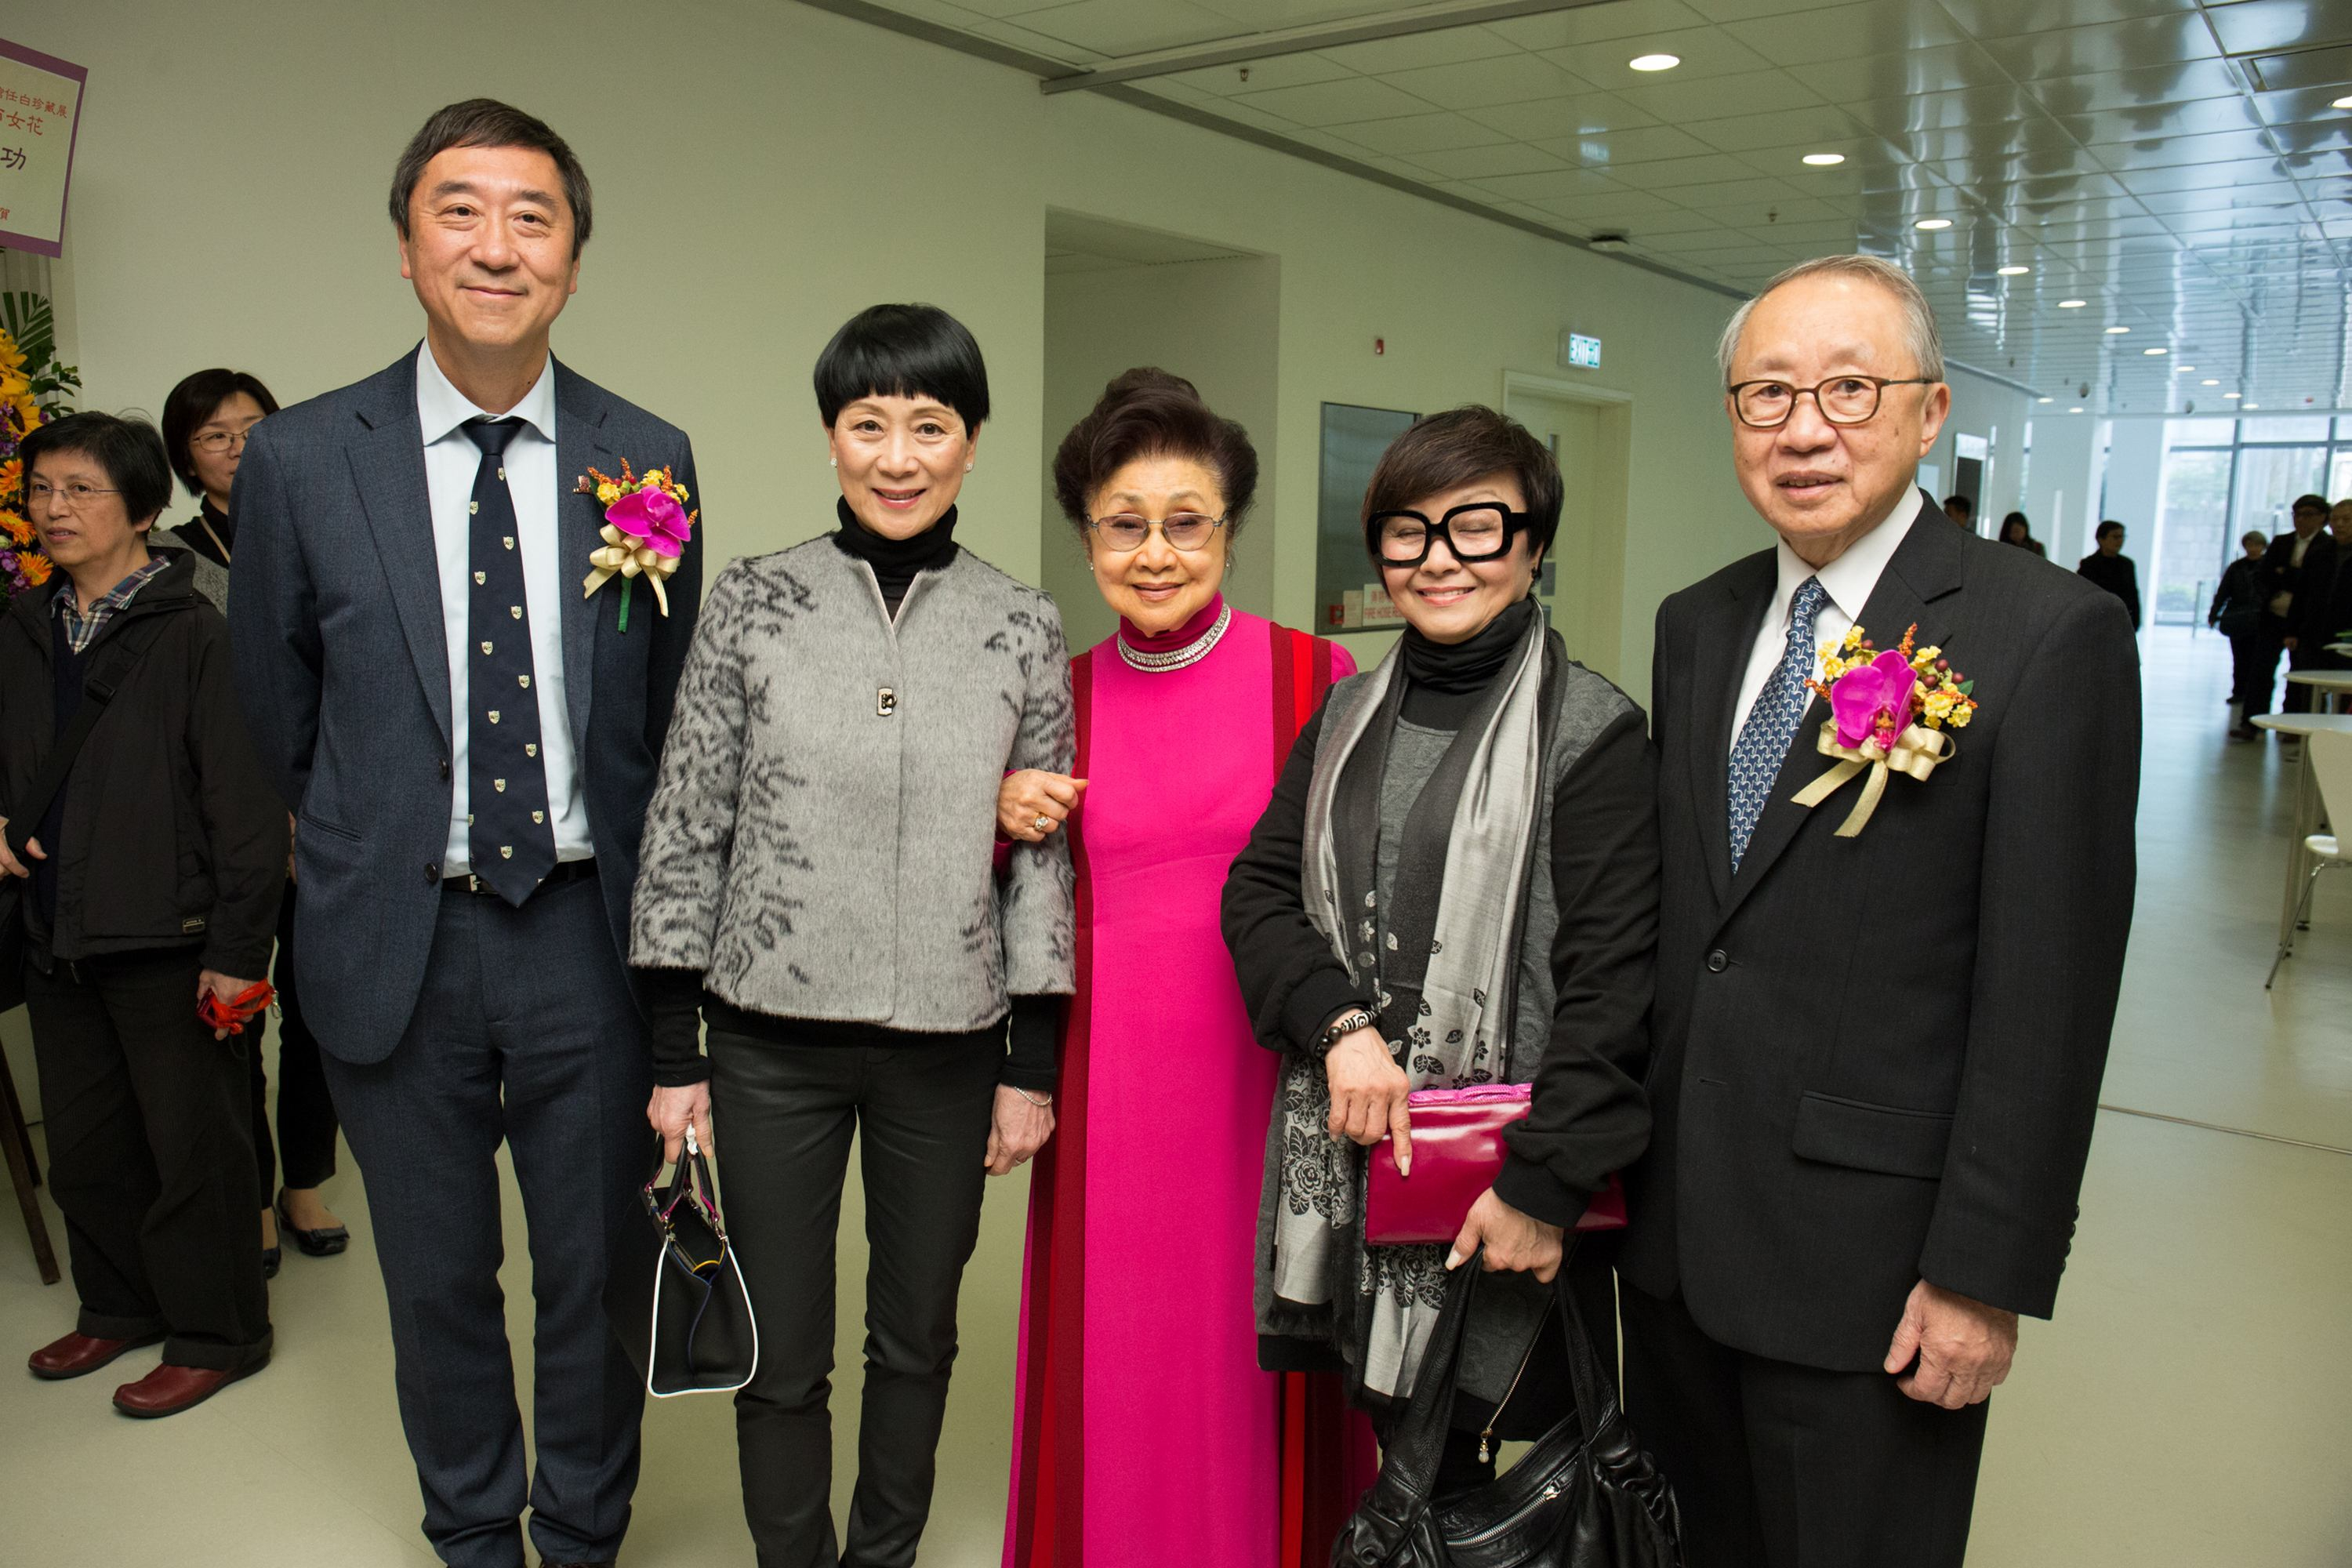 The opening ceremony of the Exhibition from CUHK Library's of Yam Pak Collection.